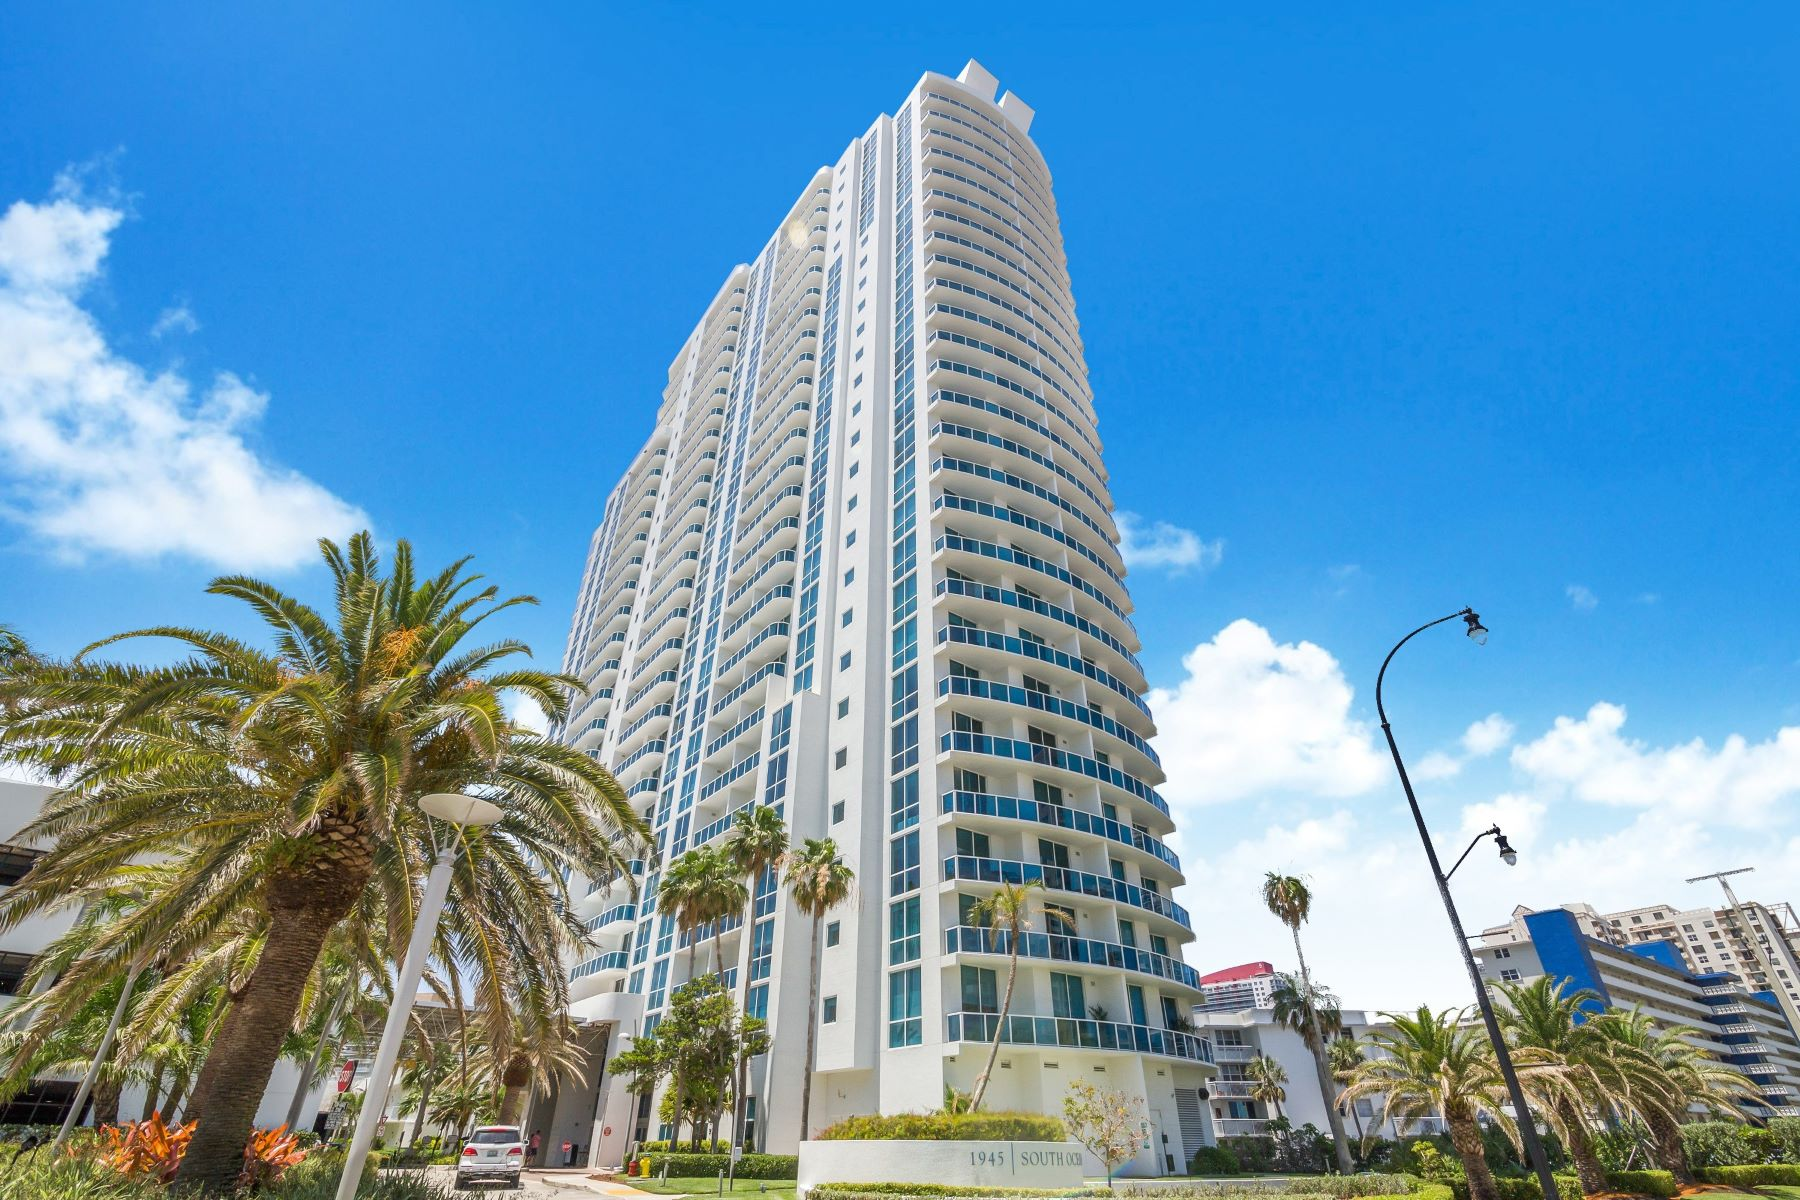 Condominiums for Sale at 1945 S Ocean Dr. TS 2802 1945 S Ocean Dr 2802, Hallandale, Florida 33009 United States